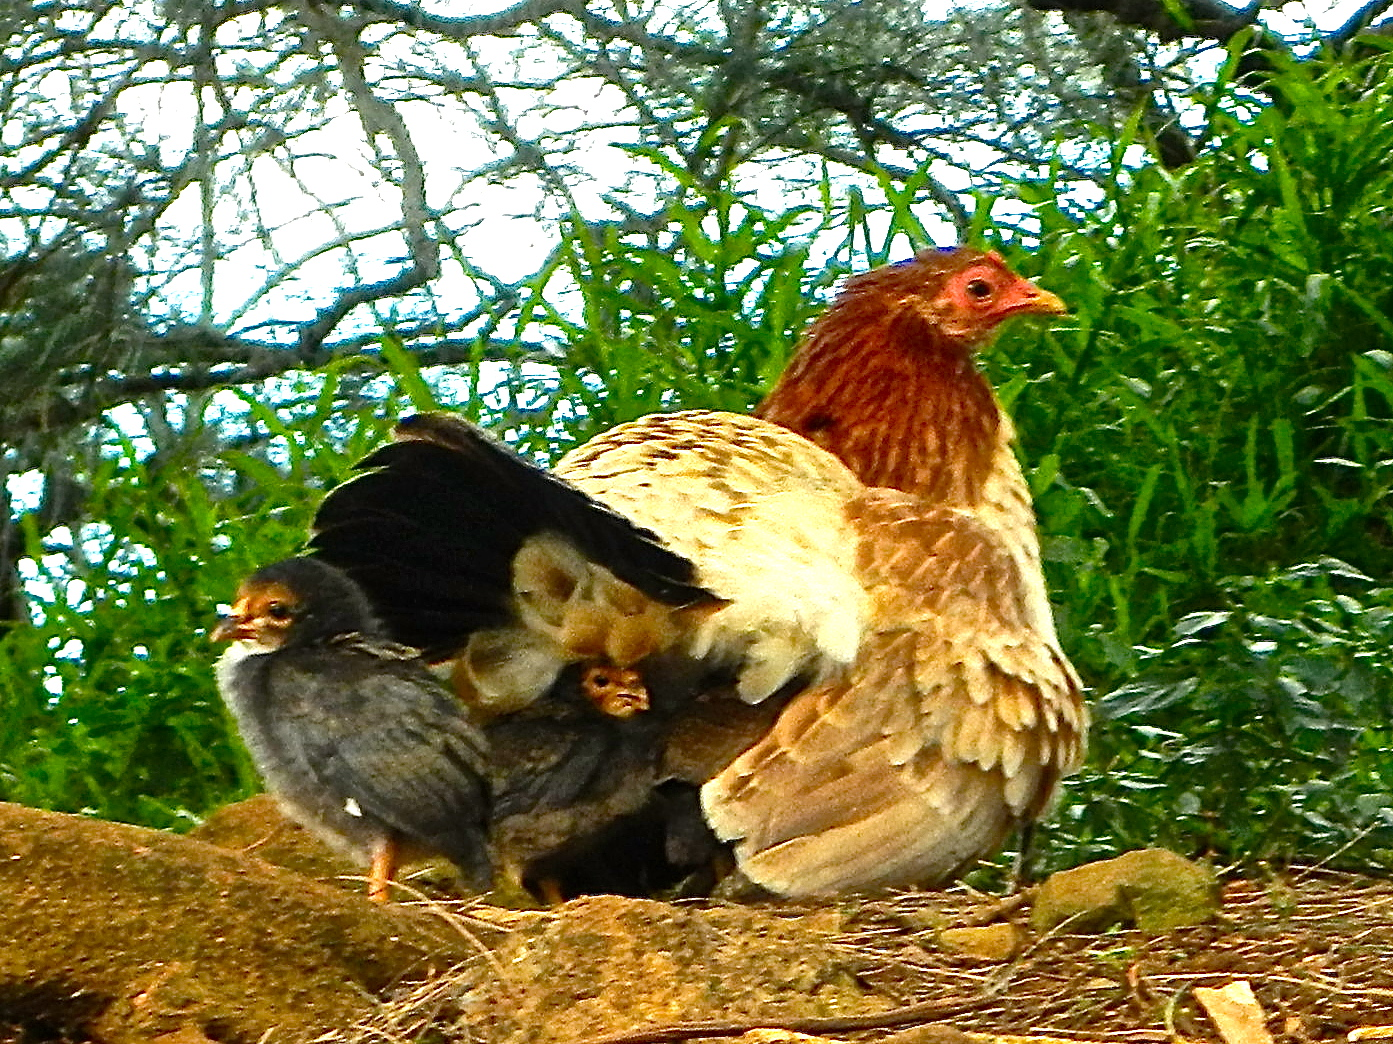 mother-hen-with-chickens-under-her-wings